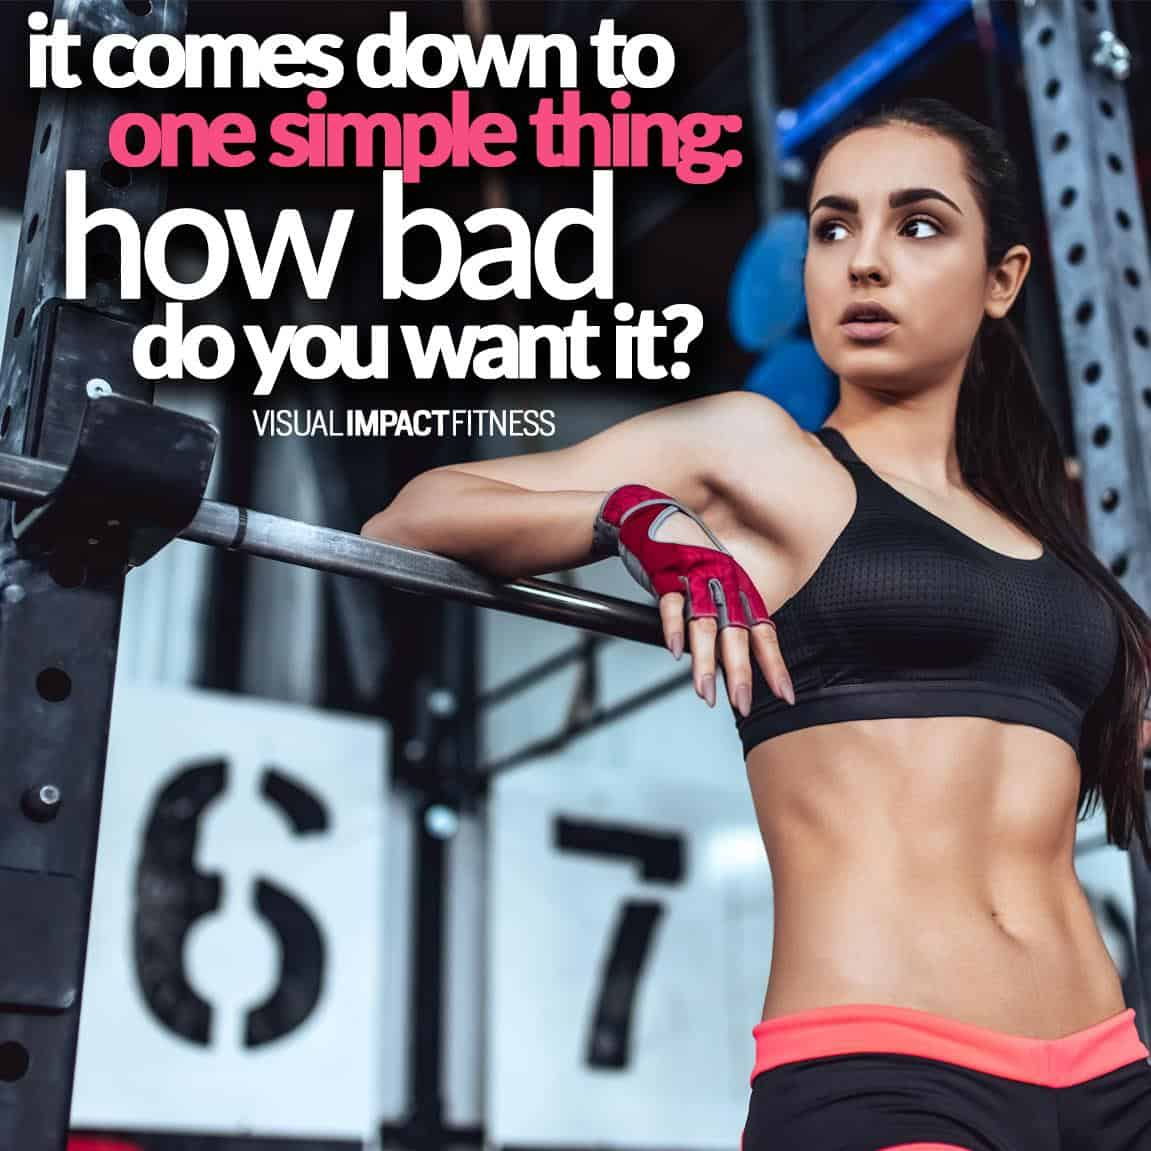 It comes down to one simple thing: How bad do you want it.